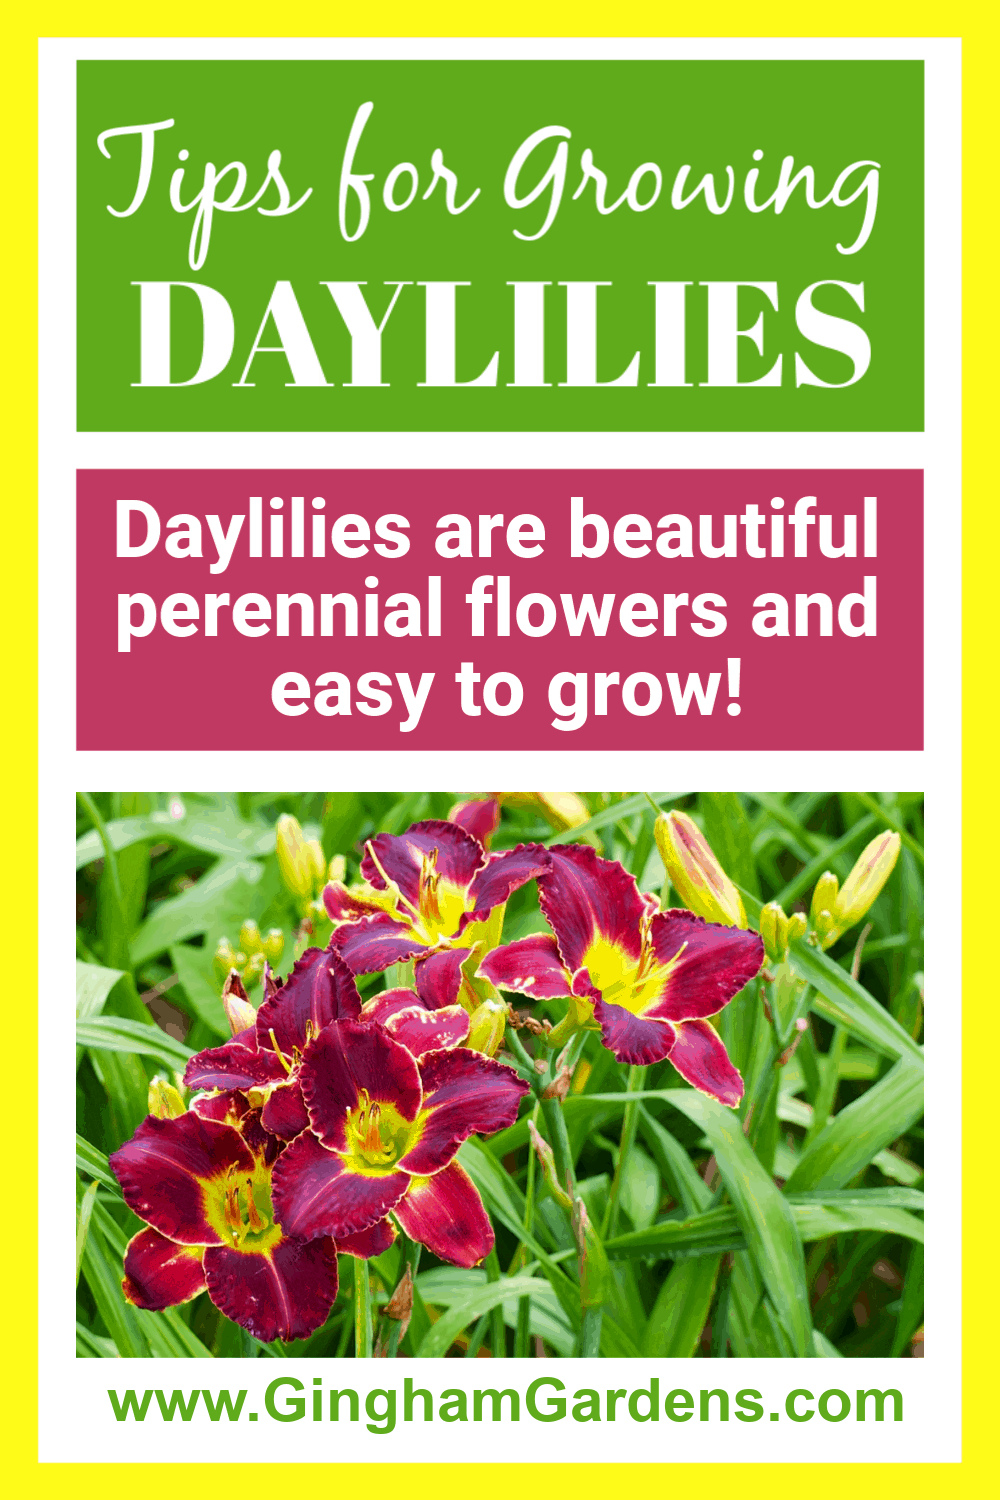 Image of Daylilies with Text Overlay - Tips for Growing Daylilies